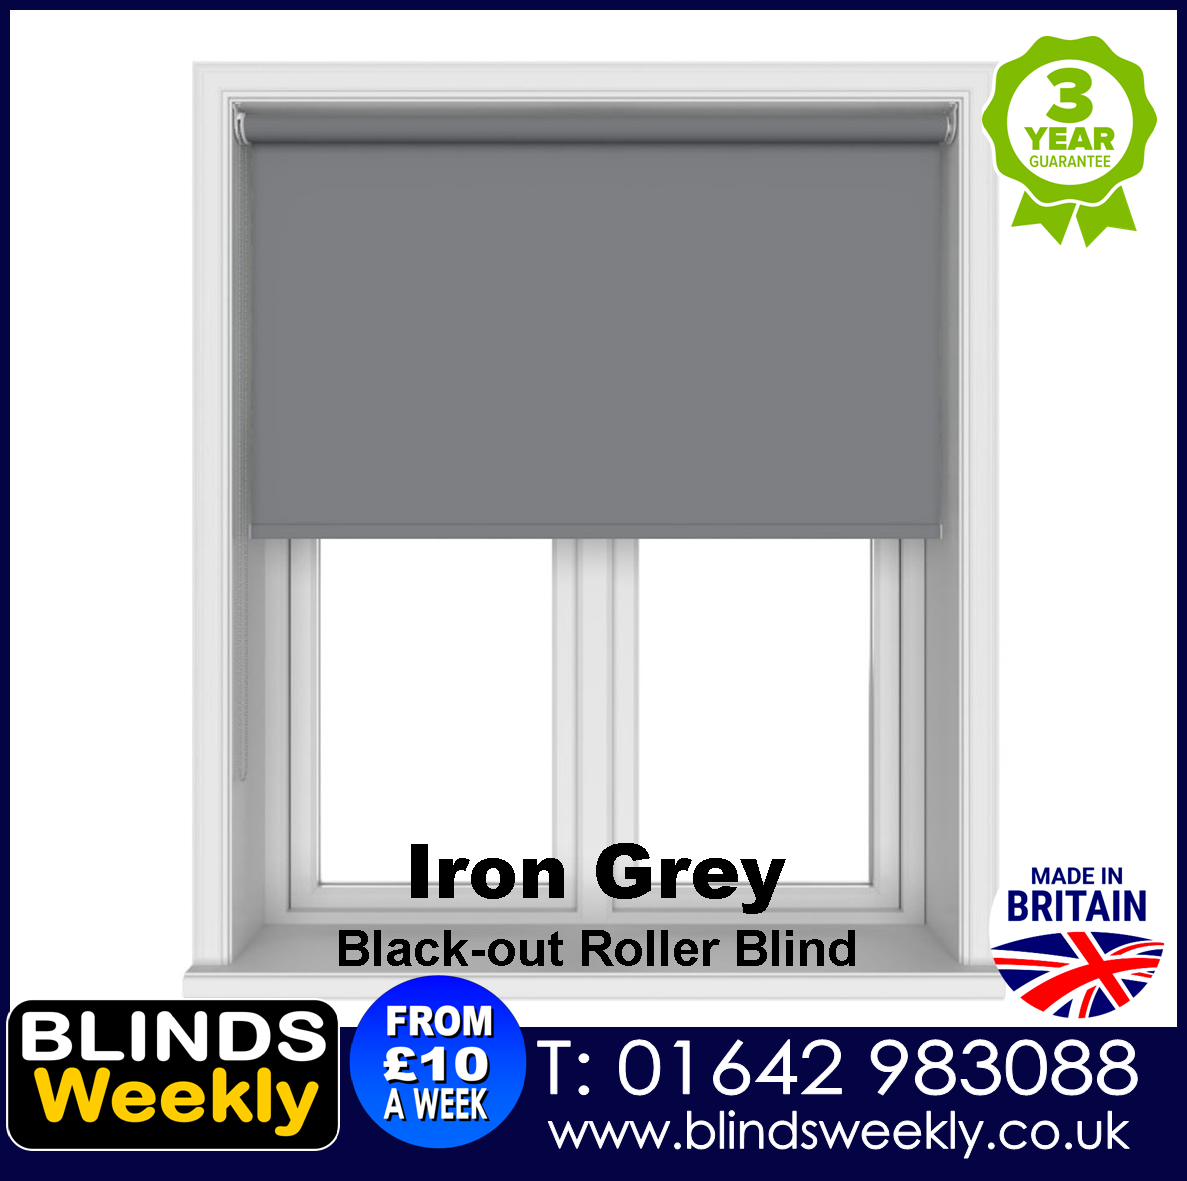 Blinds Weekly Blackout Roller Blind - IRON GREY